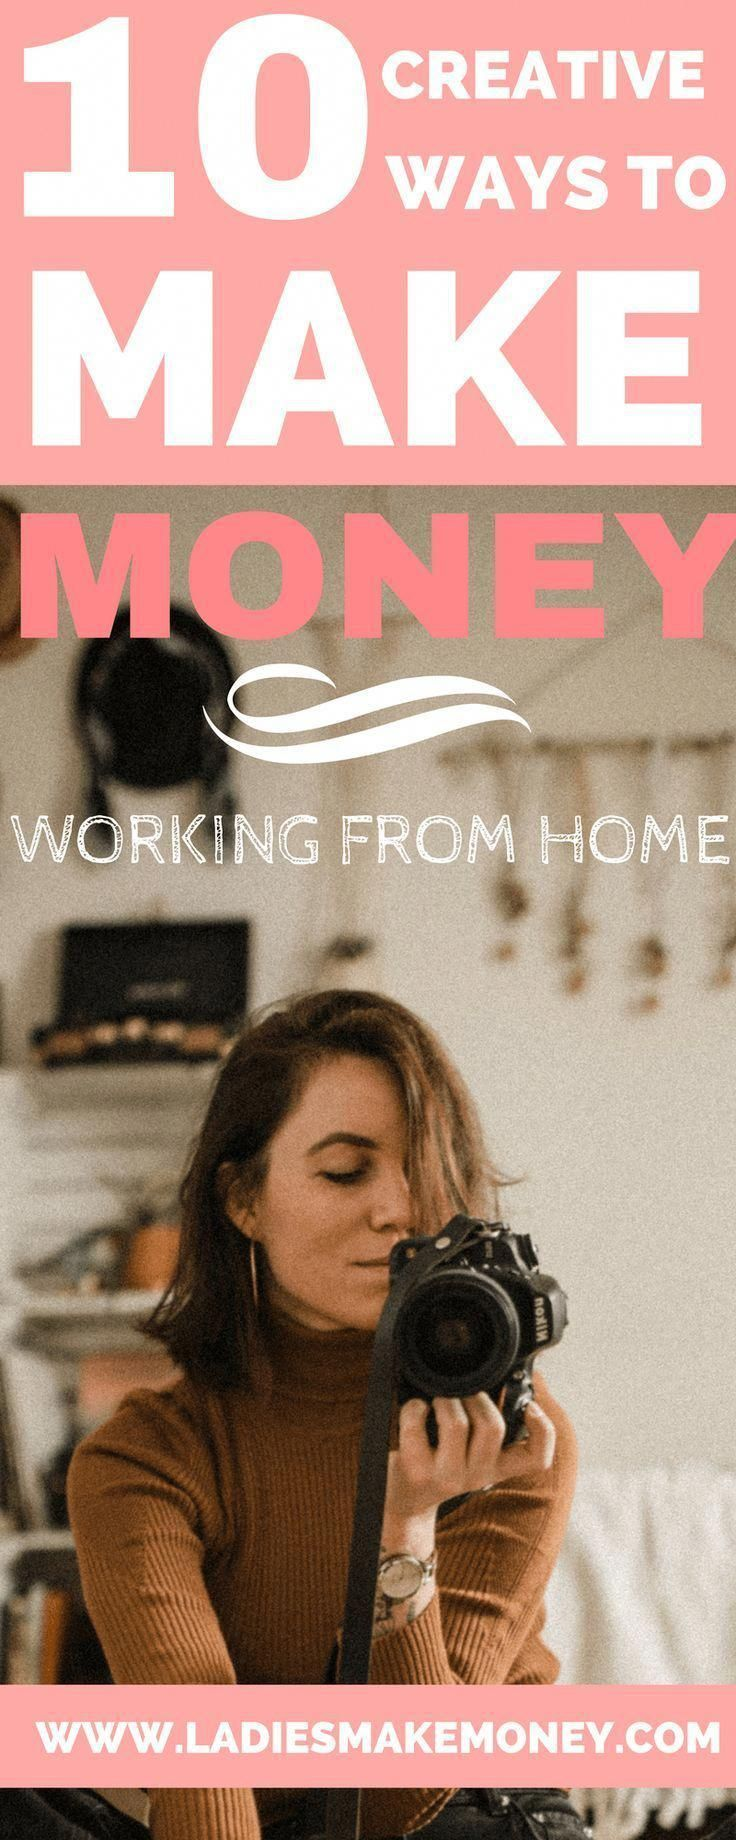 10 Creative ways to make money from home as an Entrepreneur – Ways To Make Money Online At Home | How To Make Money Online Extra Cash | How To Make Extra Money On The Side